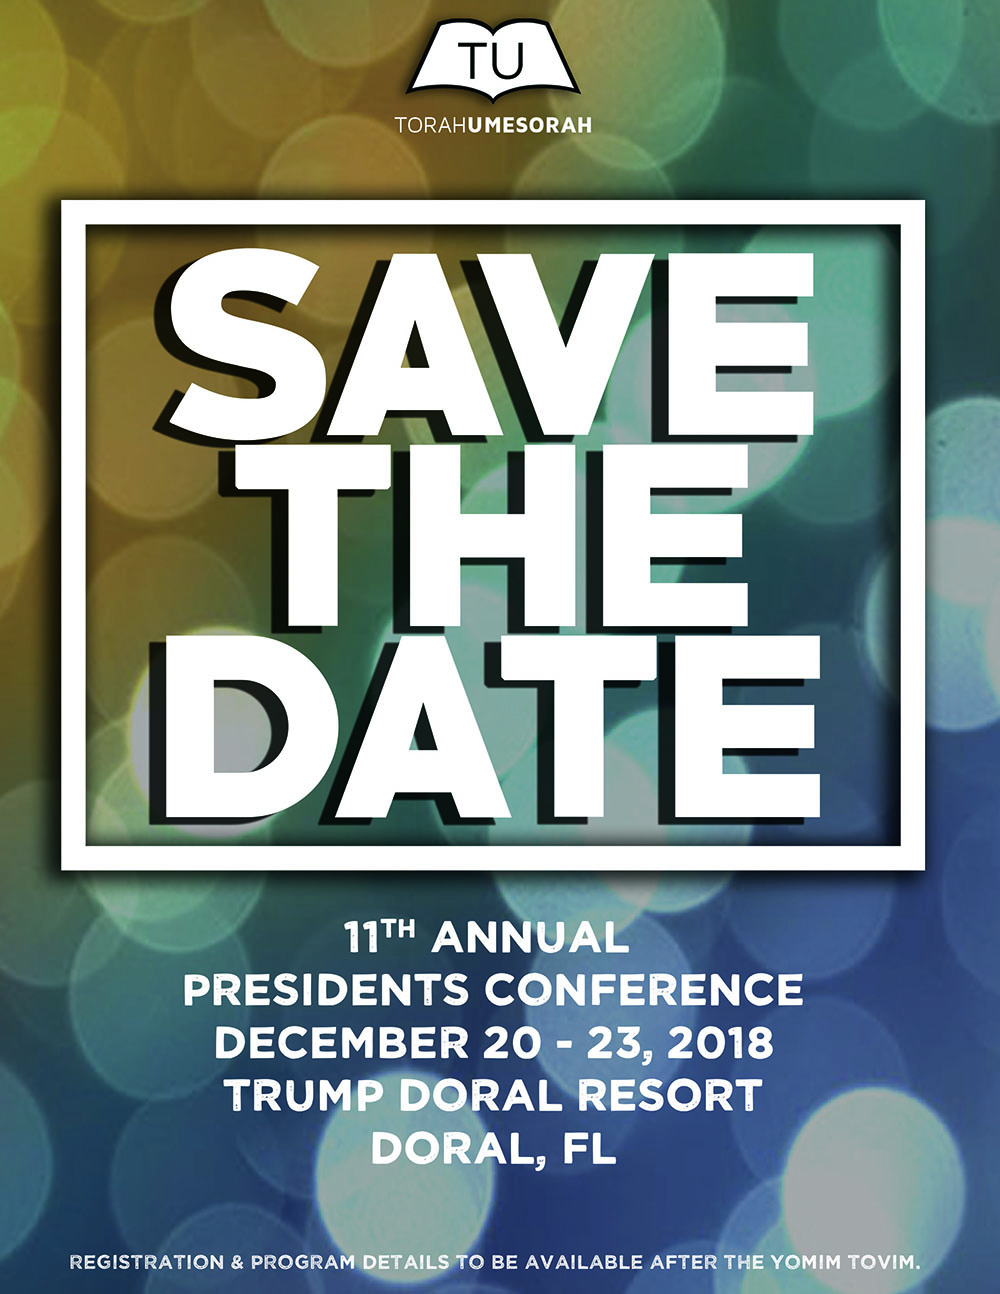 11th Annual Presidents Conference